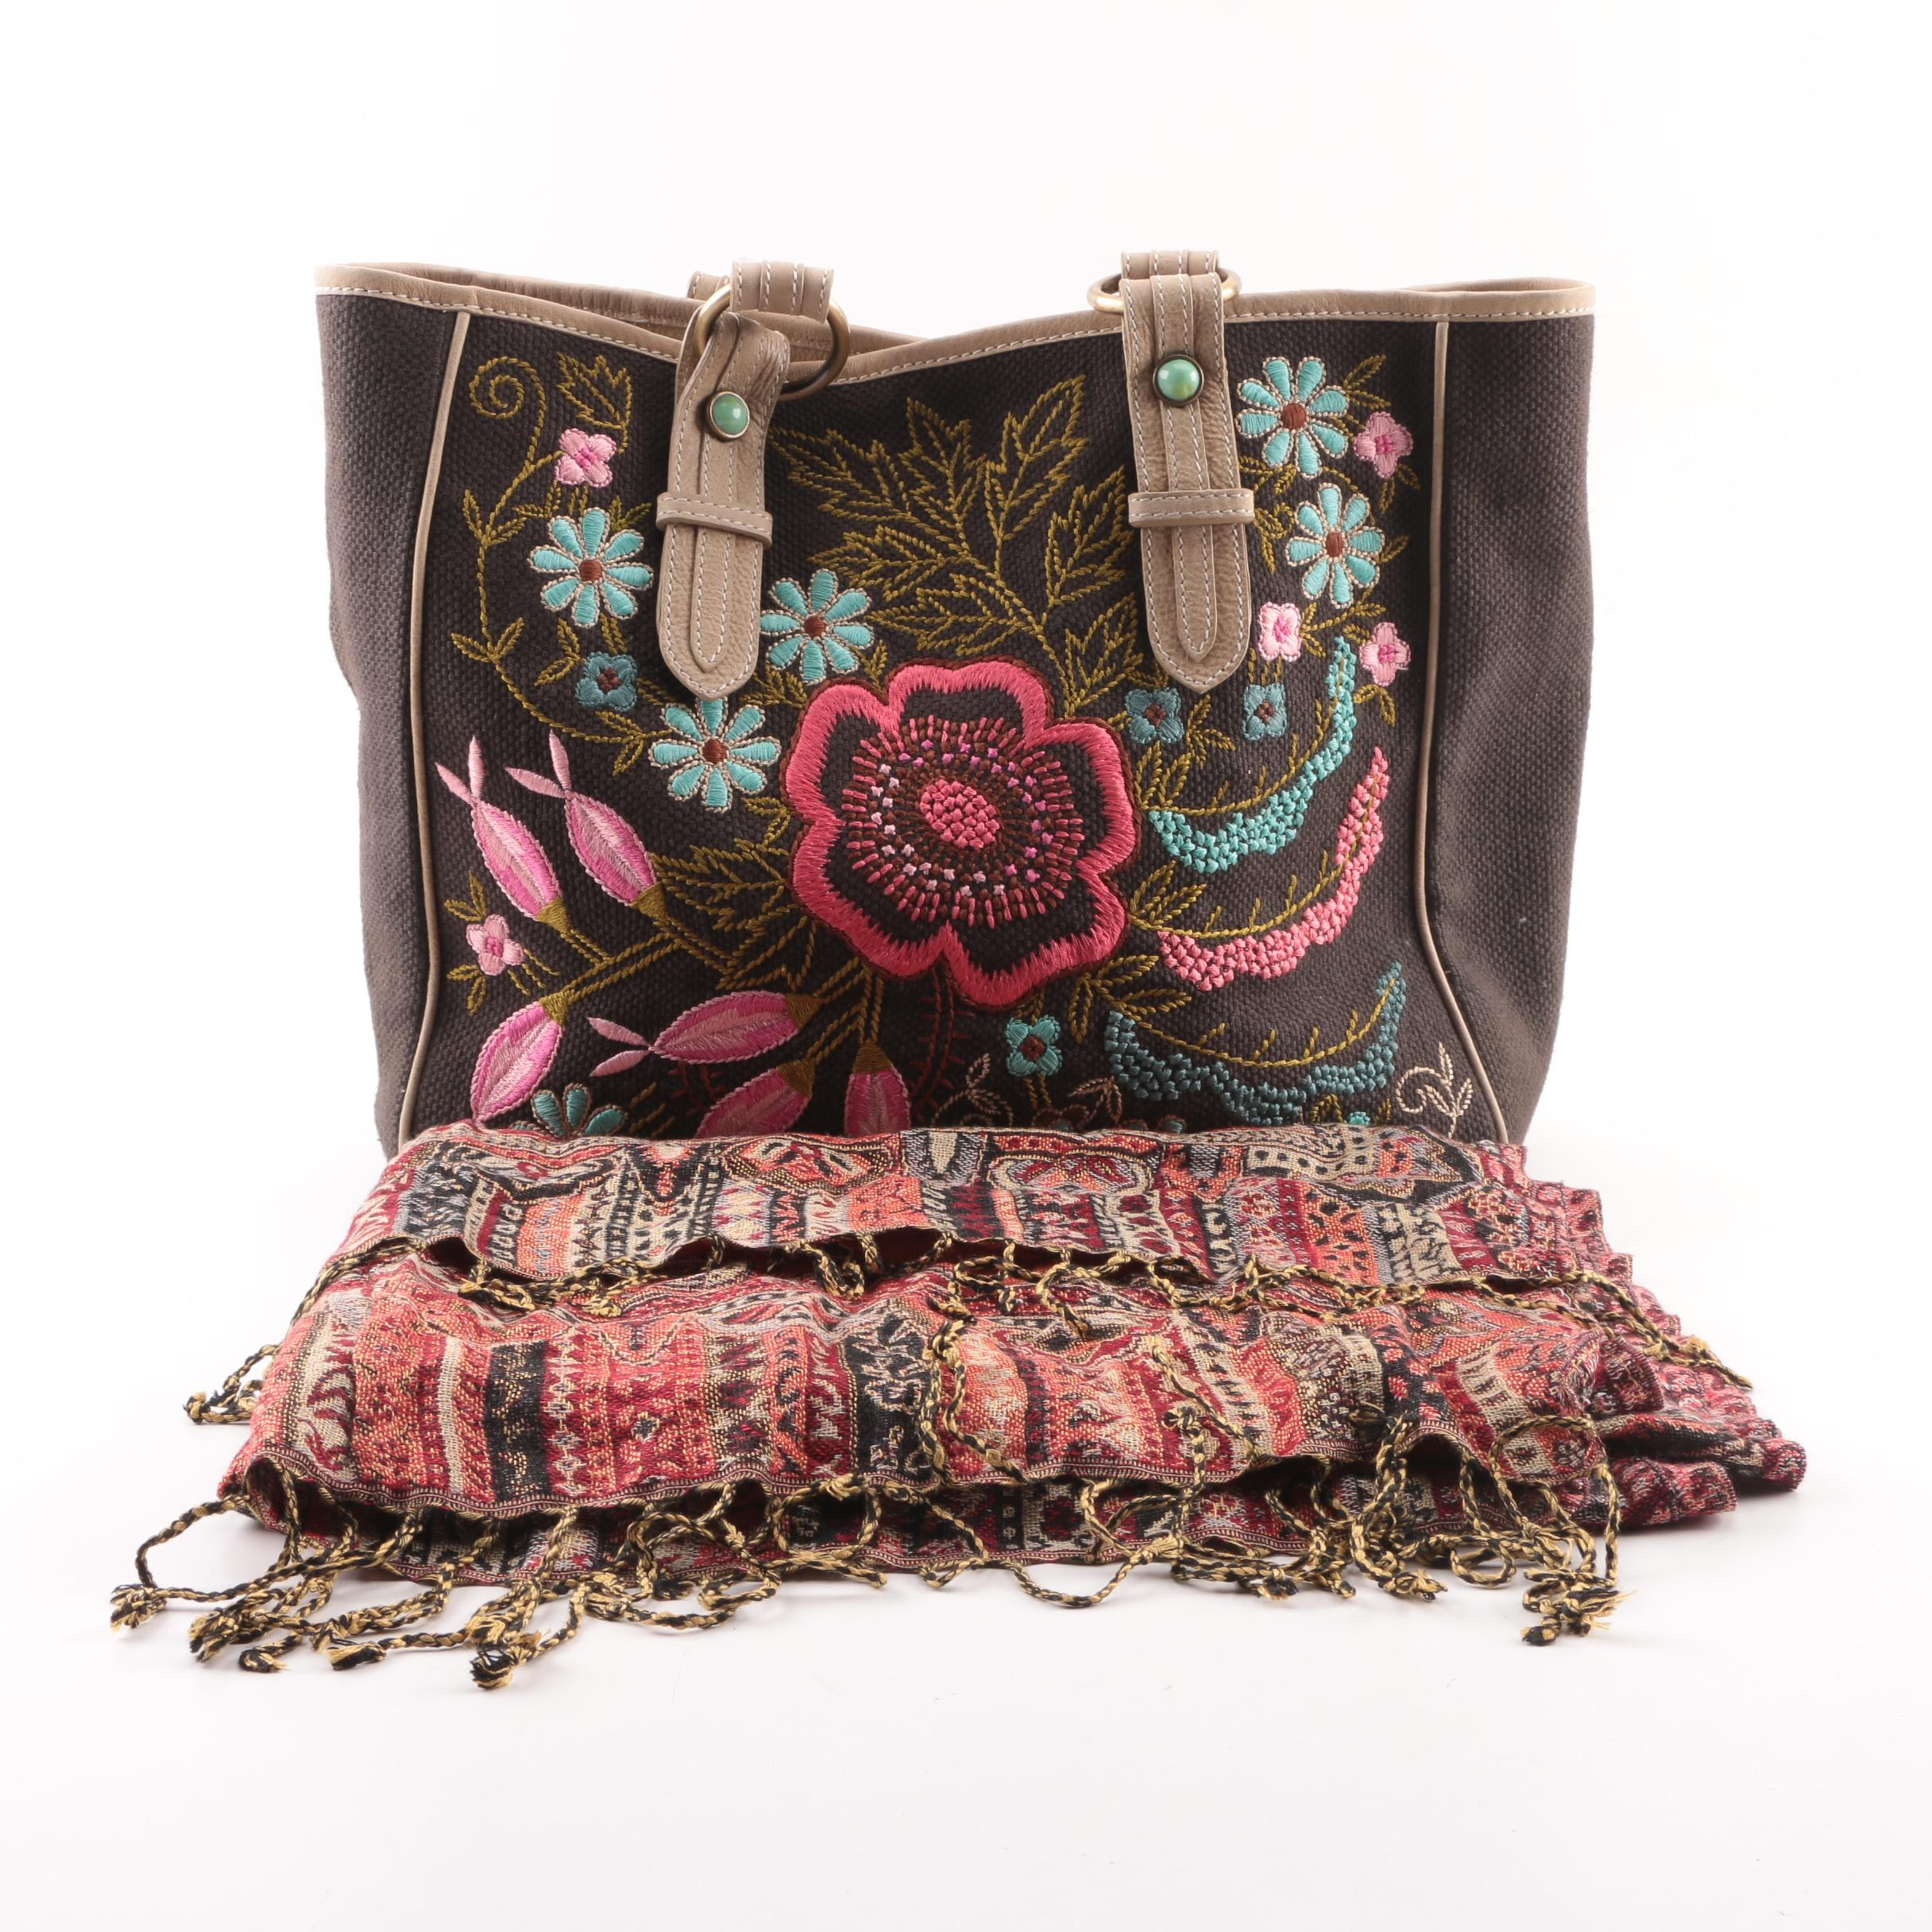 Tasha Polizzi Collection Embroidered Tote and Tapestry Wrap